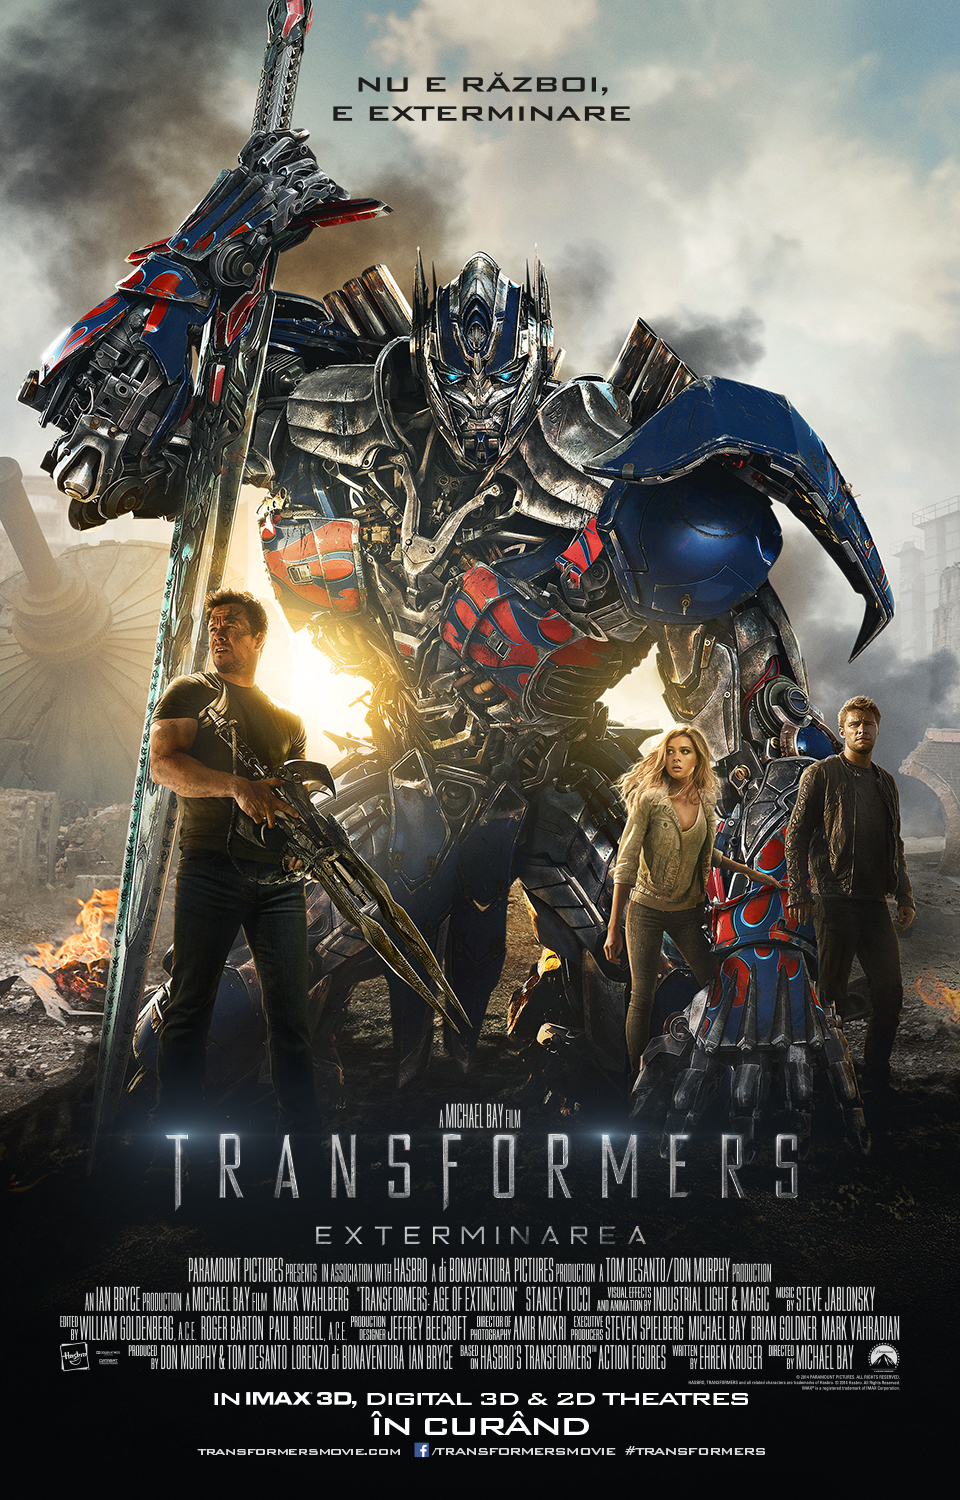 Transformers: Exterminarea 3D / Transformers: Age of Extinction 3D